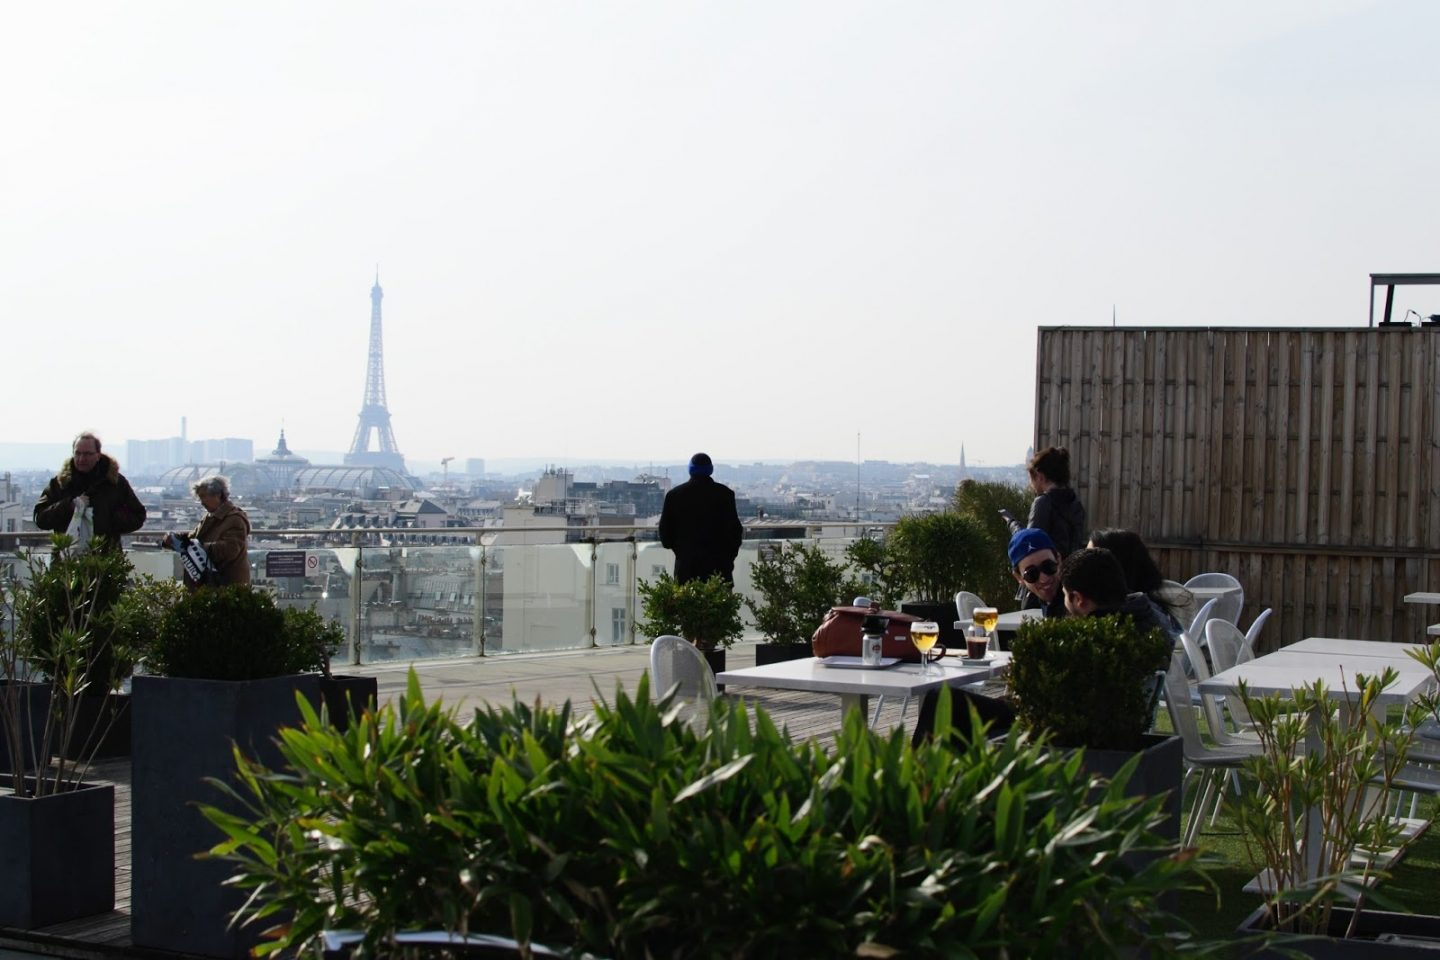 The Best Viewpoints In Paris - The Best Places To View Parisian Skyline - Tips on best view of Eiffel Tower, best views in Paris from Montparnasse, Notre Dame, Centre Pompidou, sacré cœur and more.